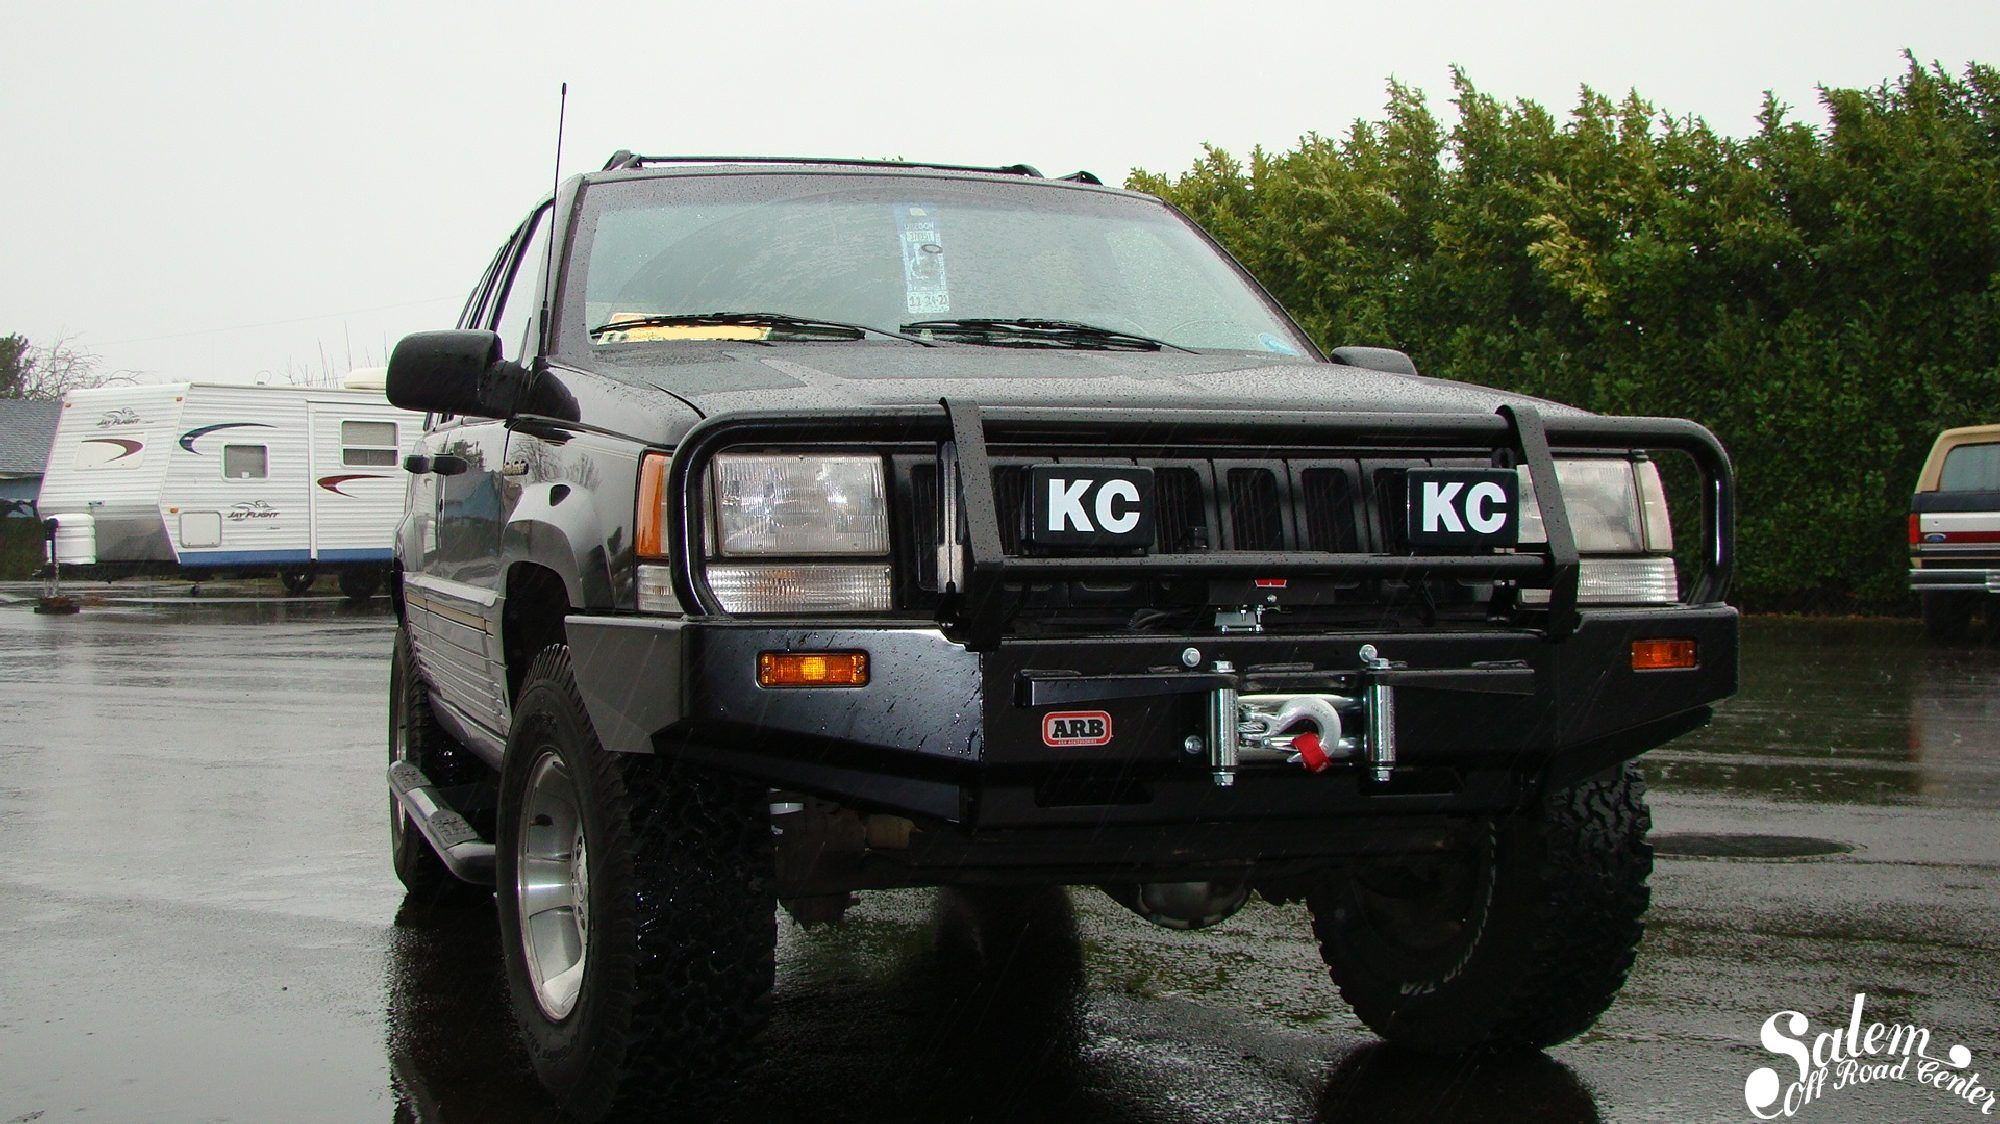 On This Jeep Zj We Installed A Arb Bumper Warn Vr8000 Winch And Kc Hilites 57 Series Lights Jeep Zj Jeep Jeepster